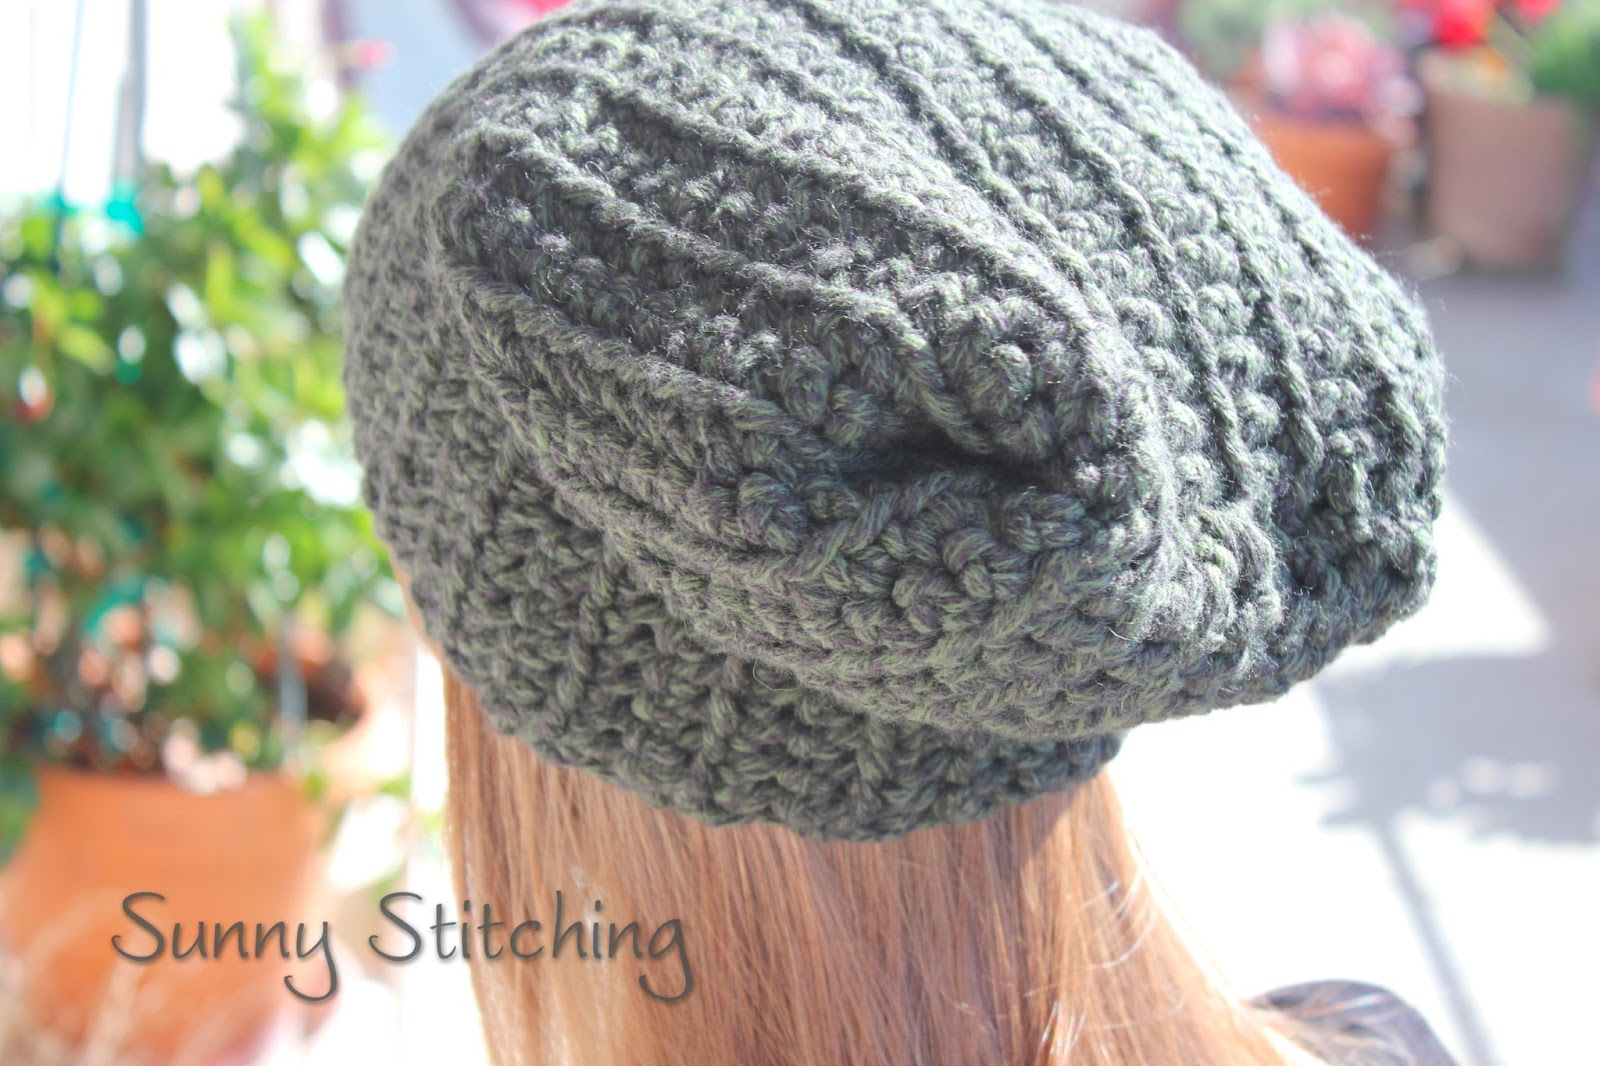 Click here to access the Slouchy Hat Free Crochet Pattern **: sunnystitching.blogspot.com/2013/01/slouchy-hat-crochet-pattern.html